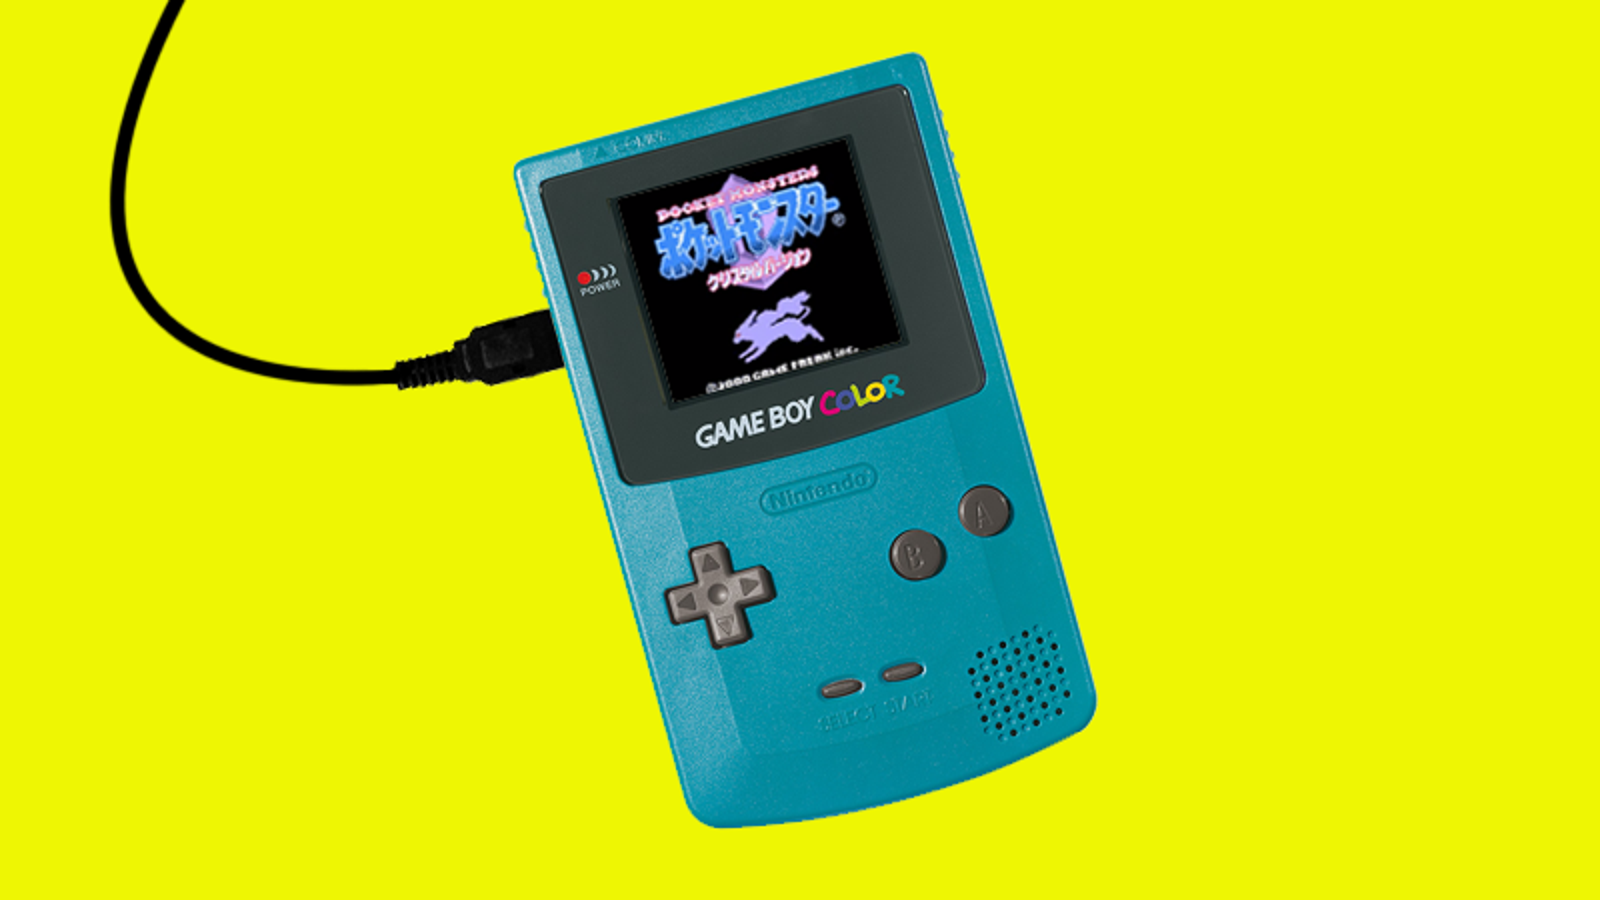 That Time Nintendo Took the Game Boy (and Pokémon) Online